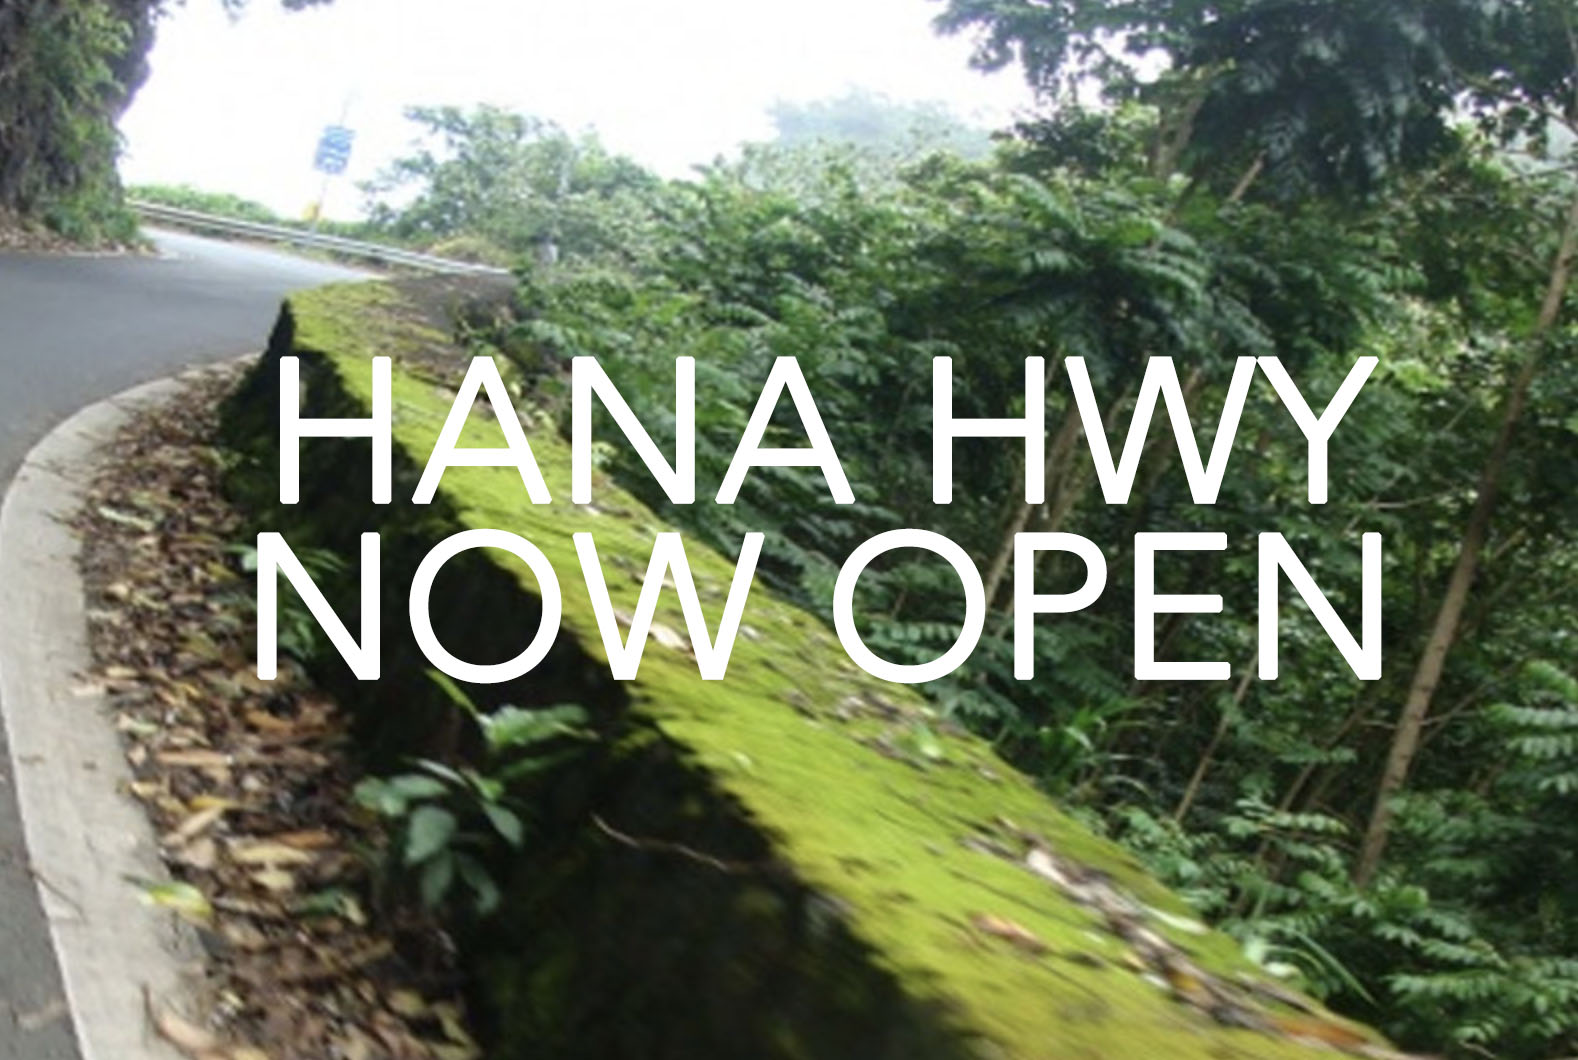 UPDATE: Hāna Highway Now OPEN in Nāhiku Following Traffic Accident